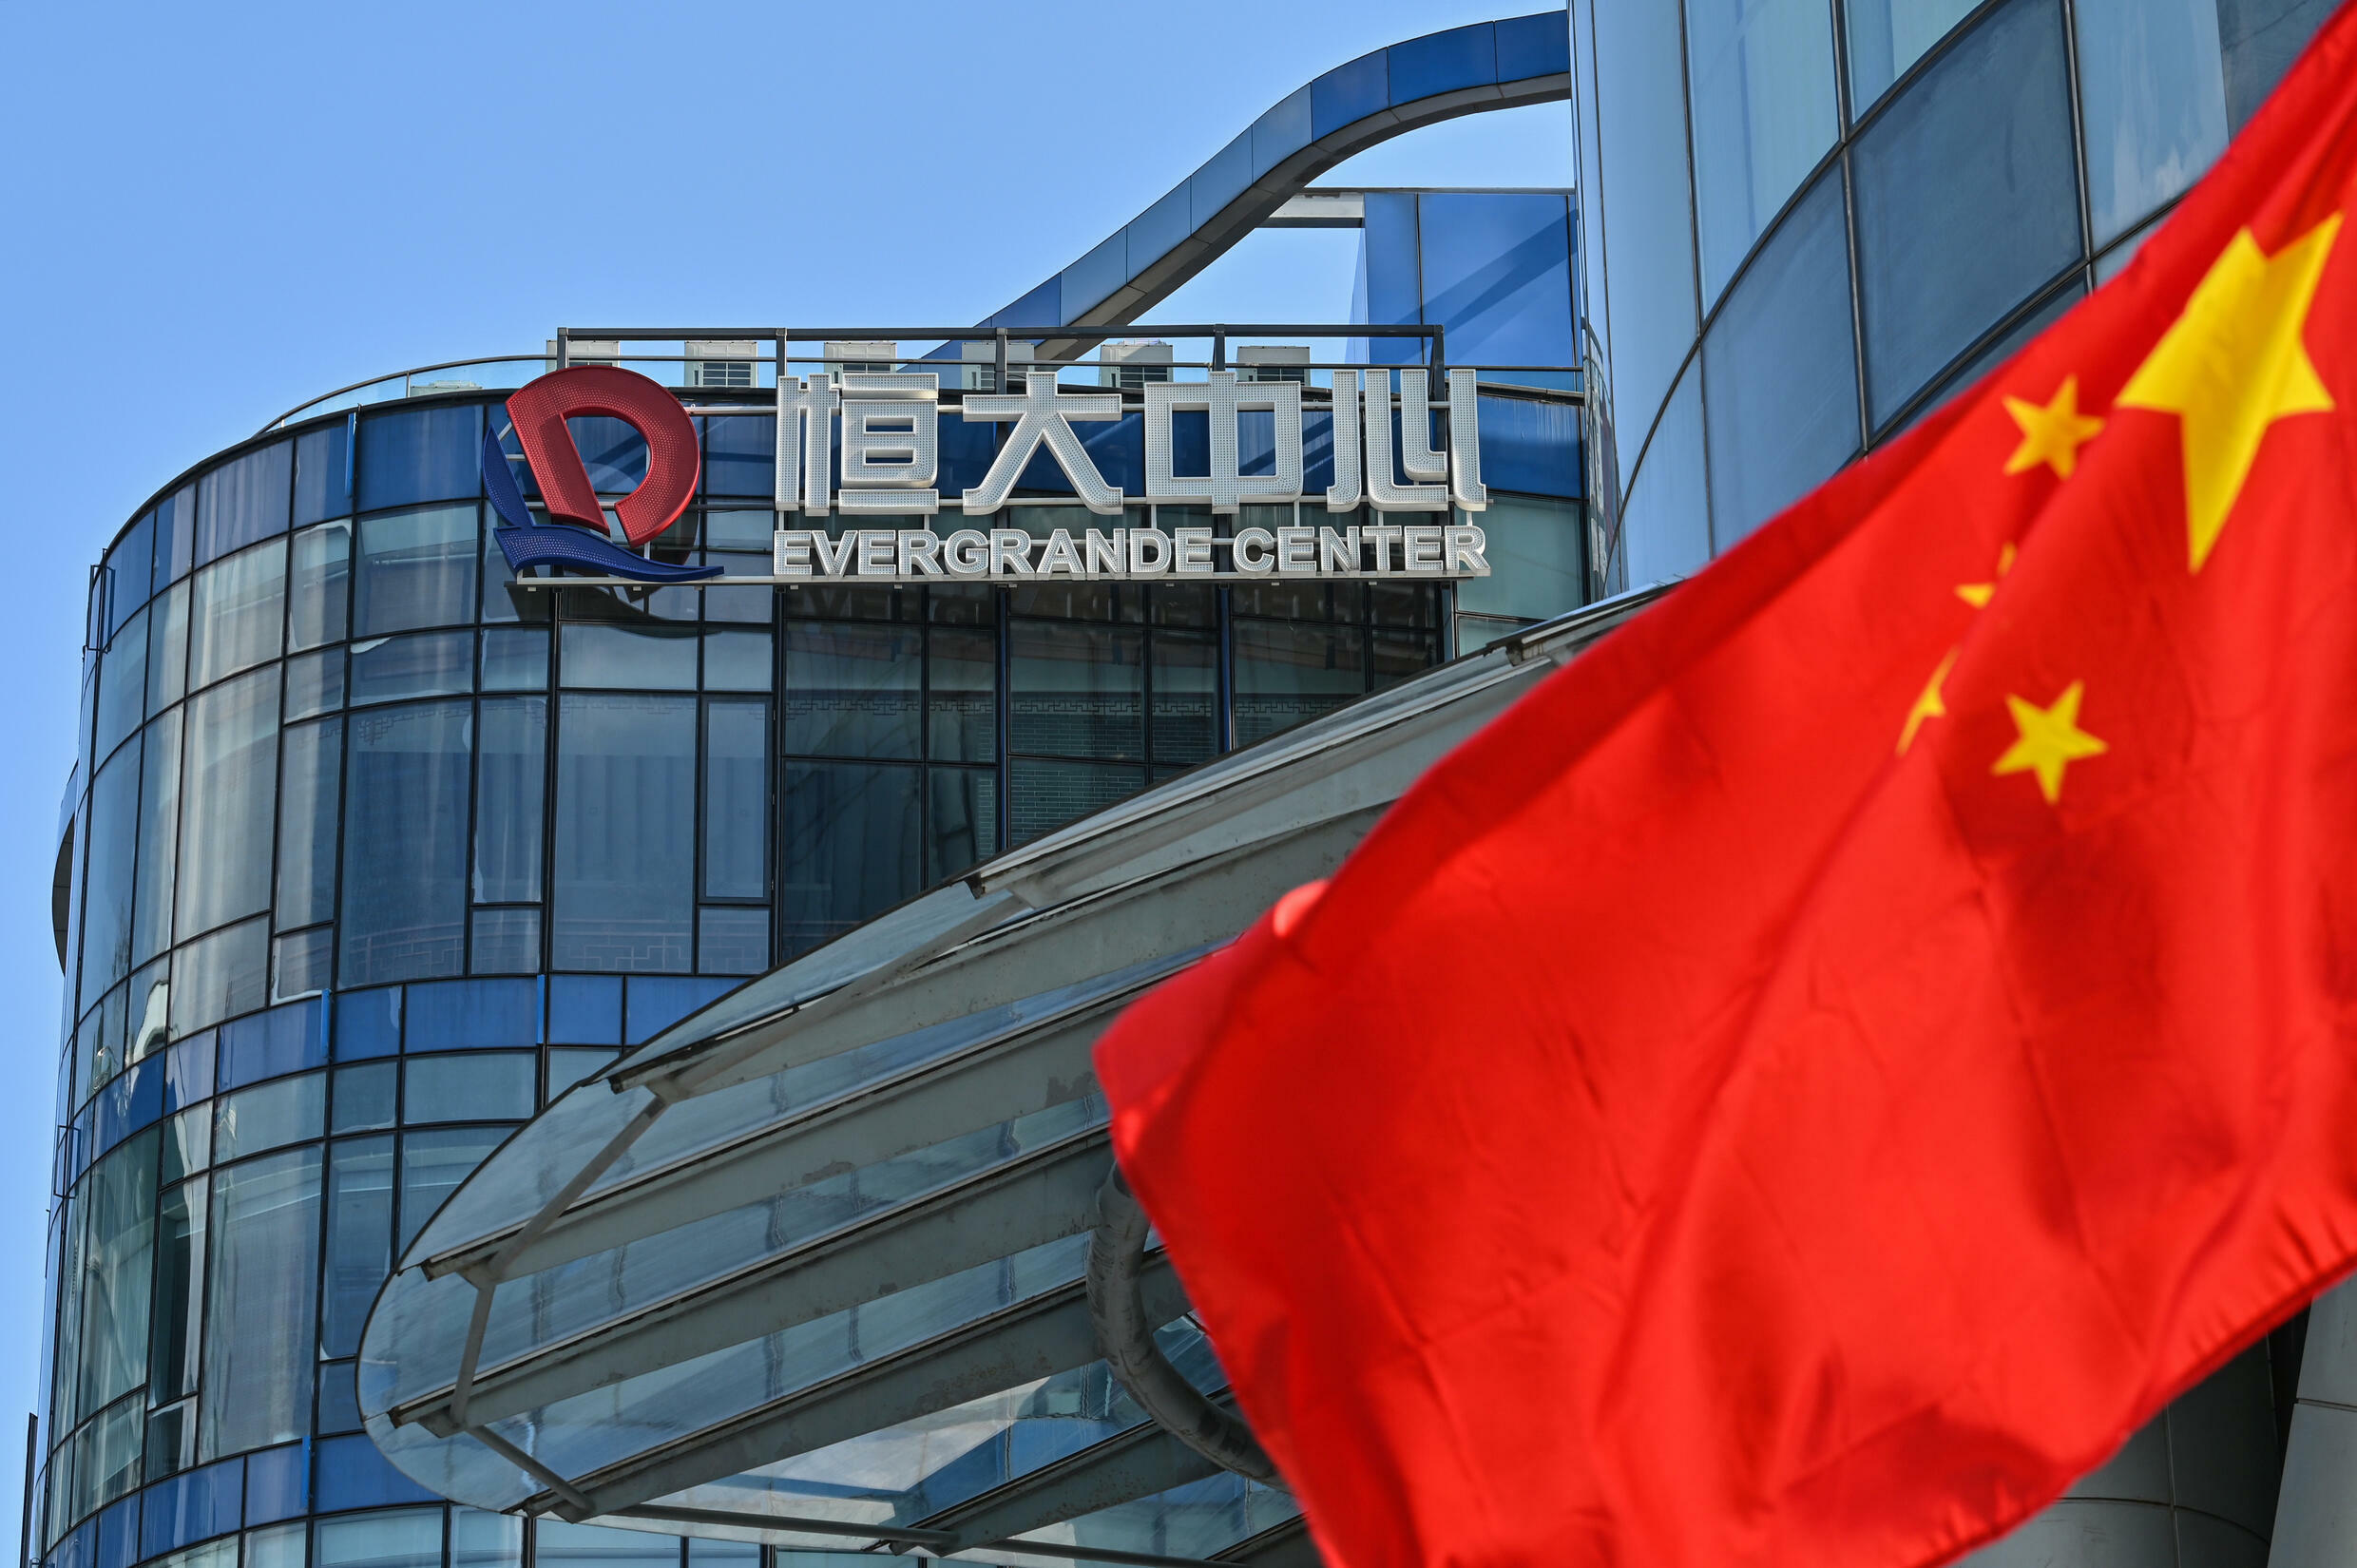 There are concerns that the crisis at embattled China Evergrande could spill over into the wider economy